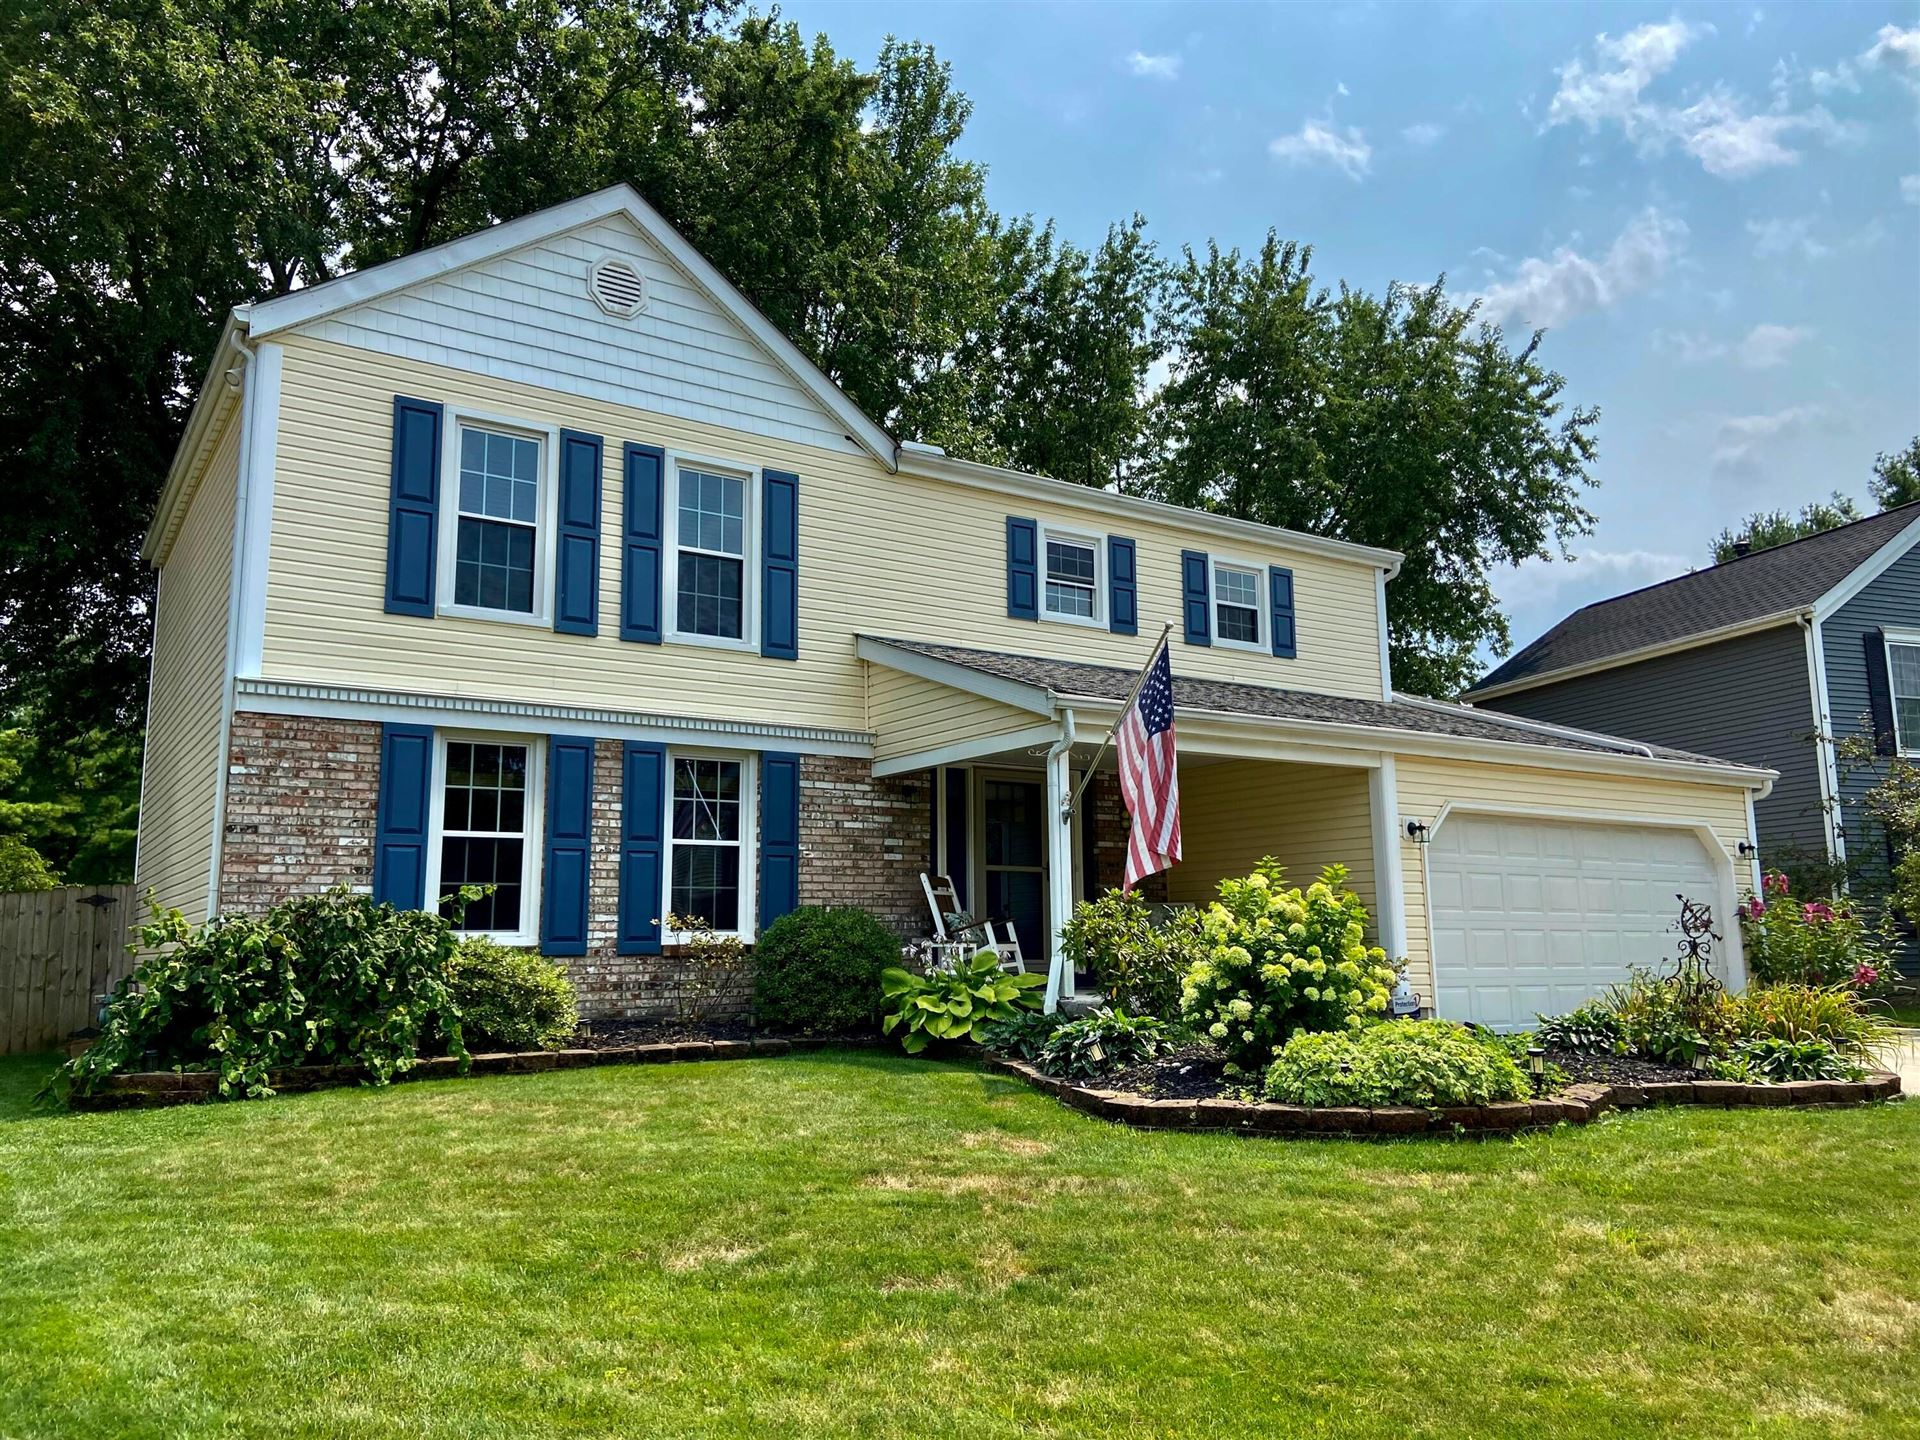 Photo of 815 Pine Post Lane, Westerville, OH 43081 (MLS # 221028907)